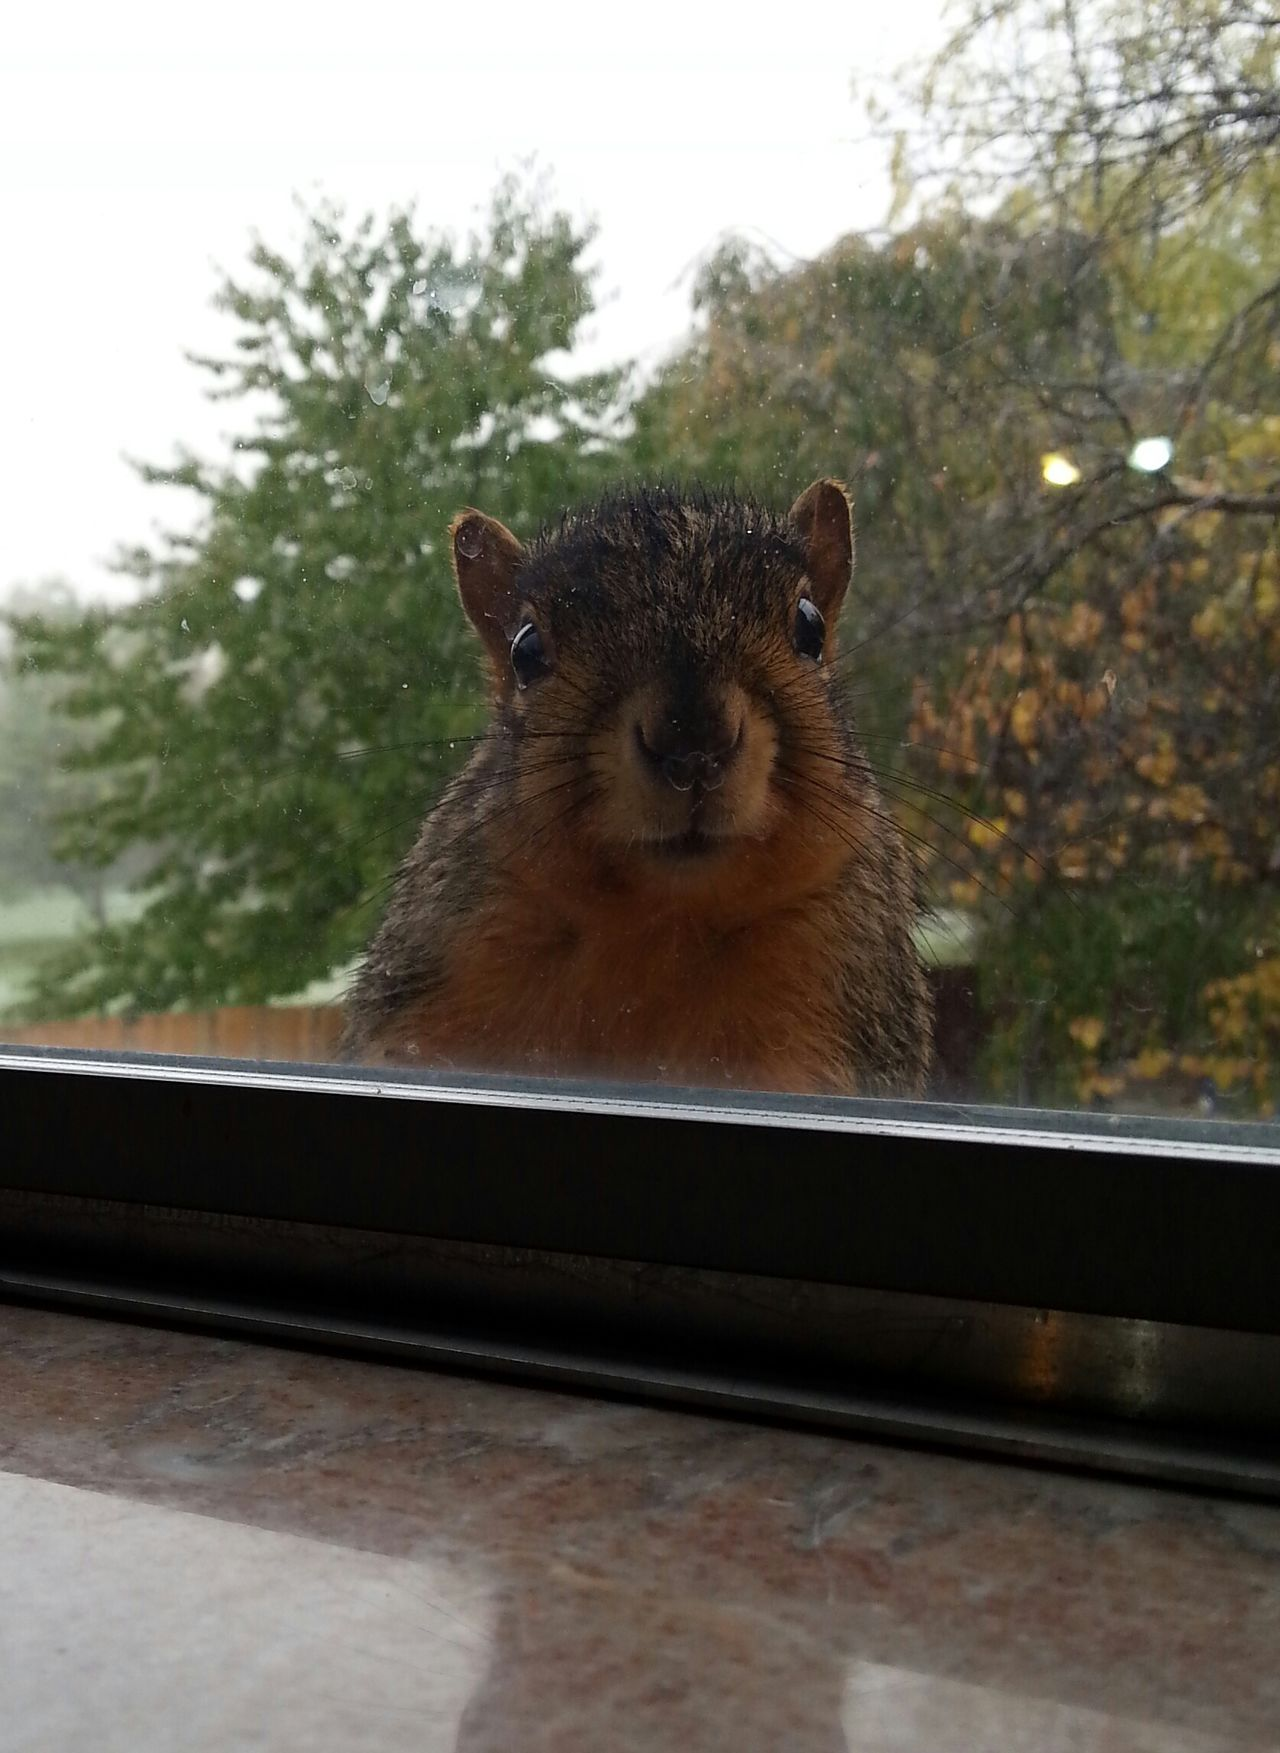 Squirrel Window Peeking Rain Snow Fall Season Trees Sky Leaves